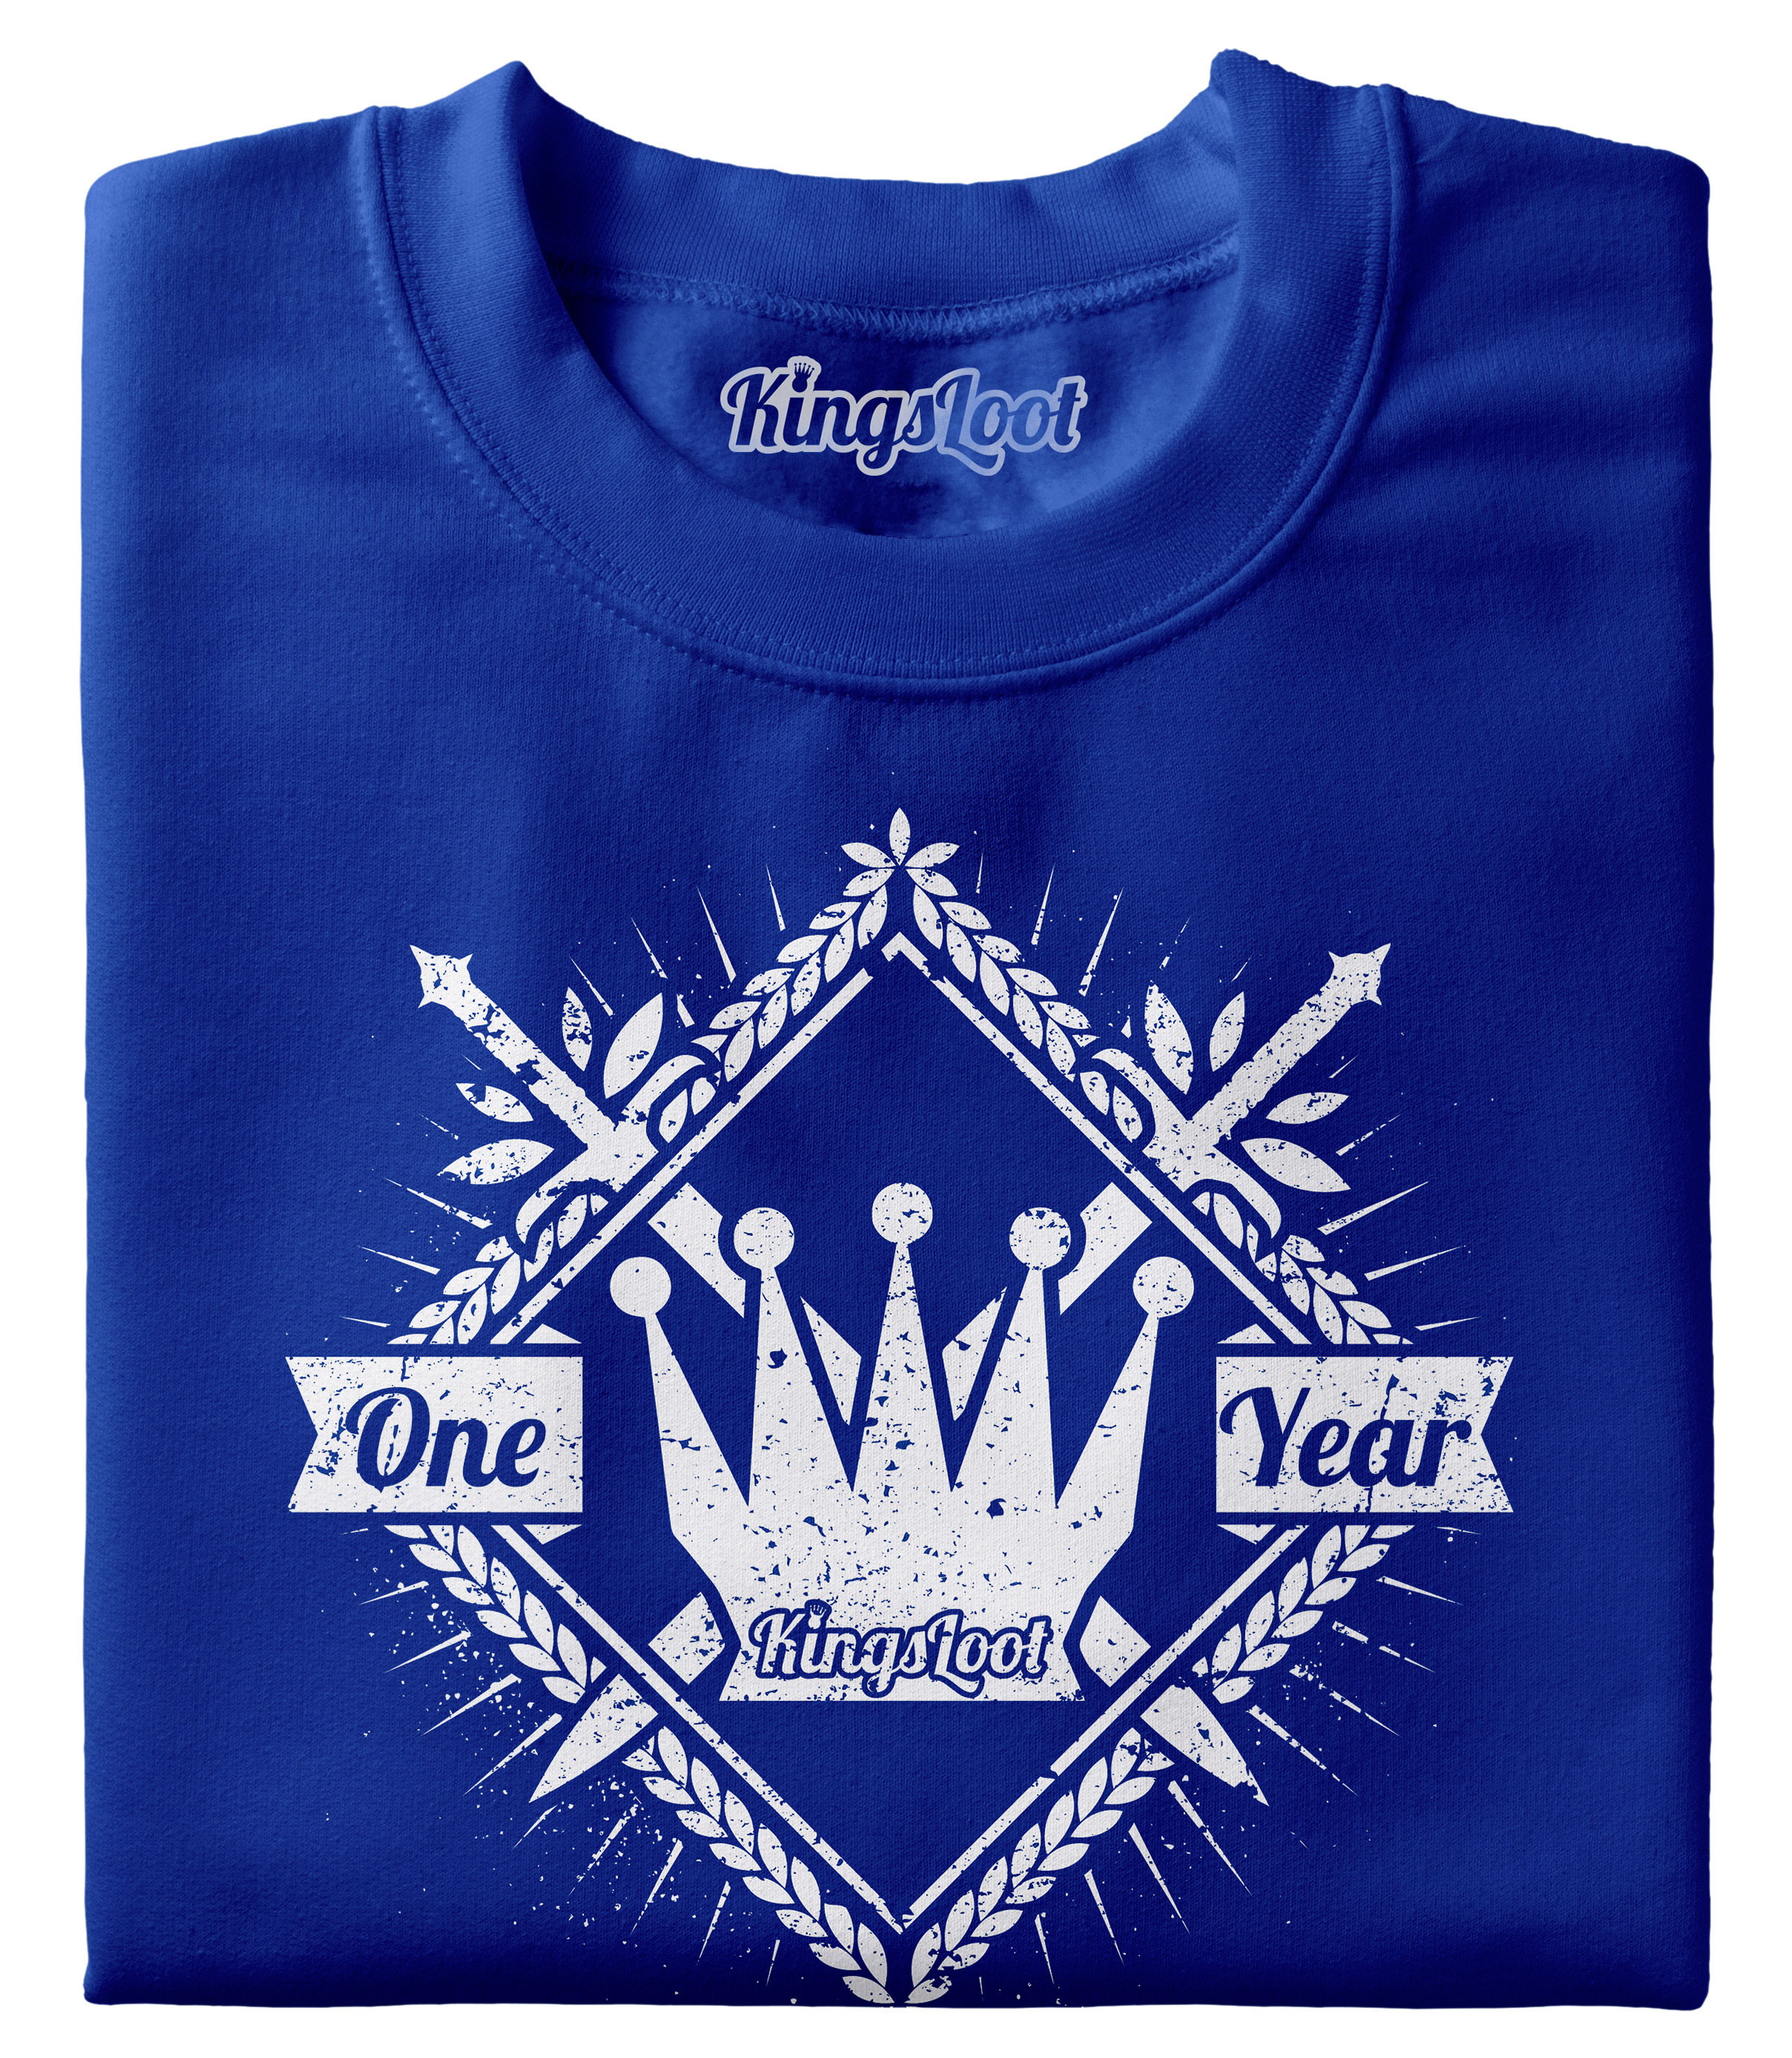 """One Year KingsLoot"" T-Shirt"